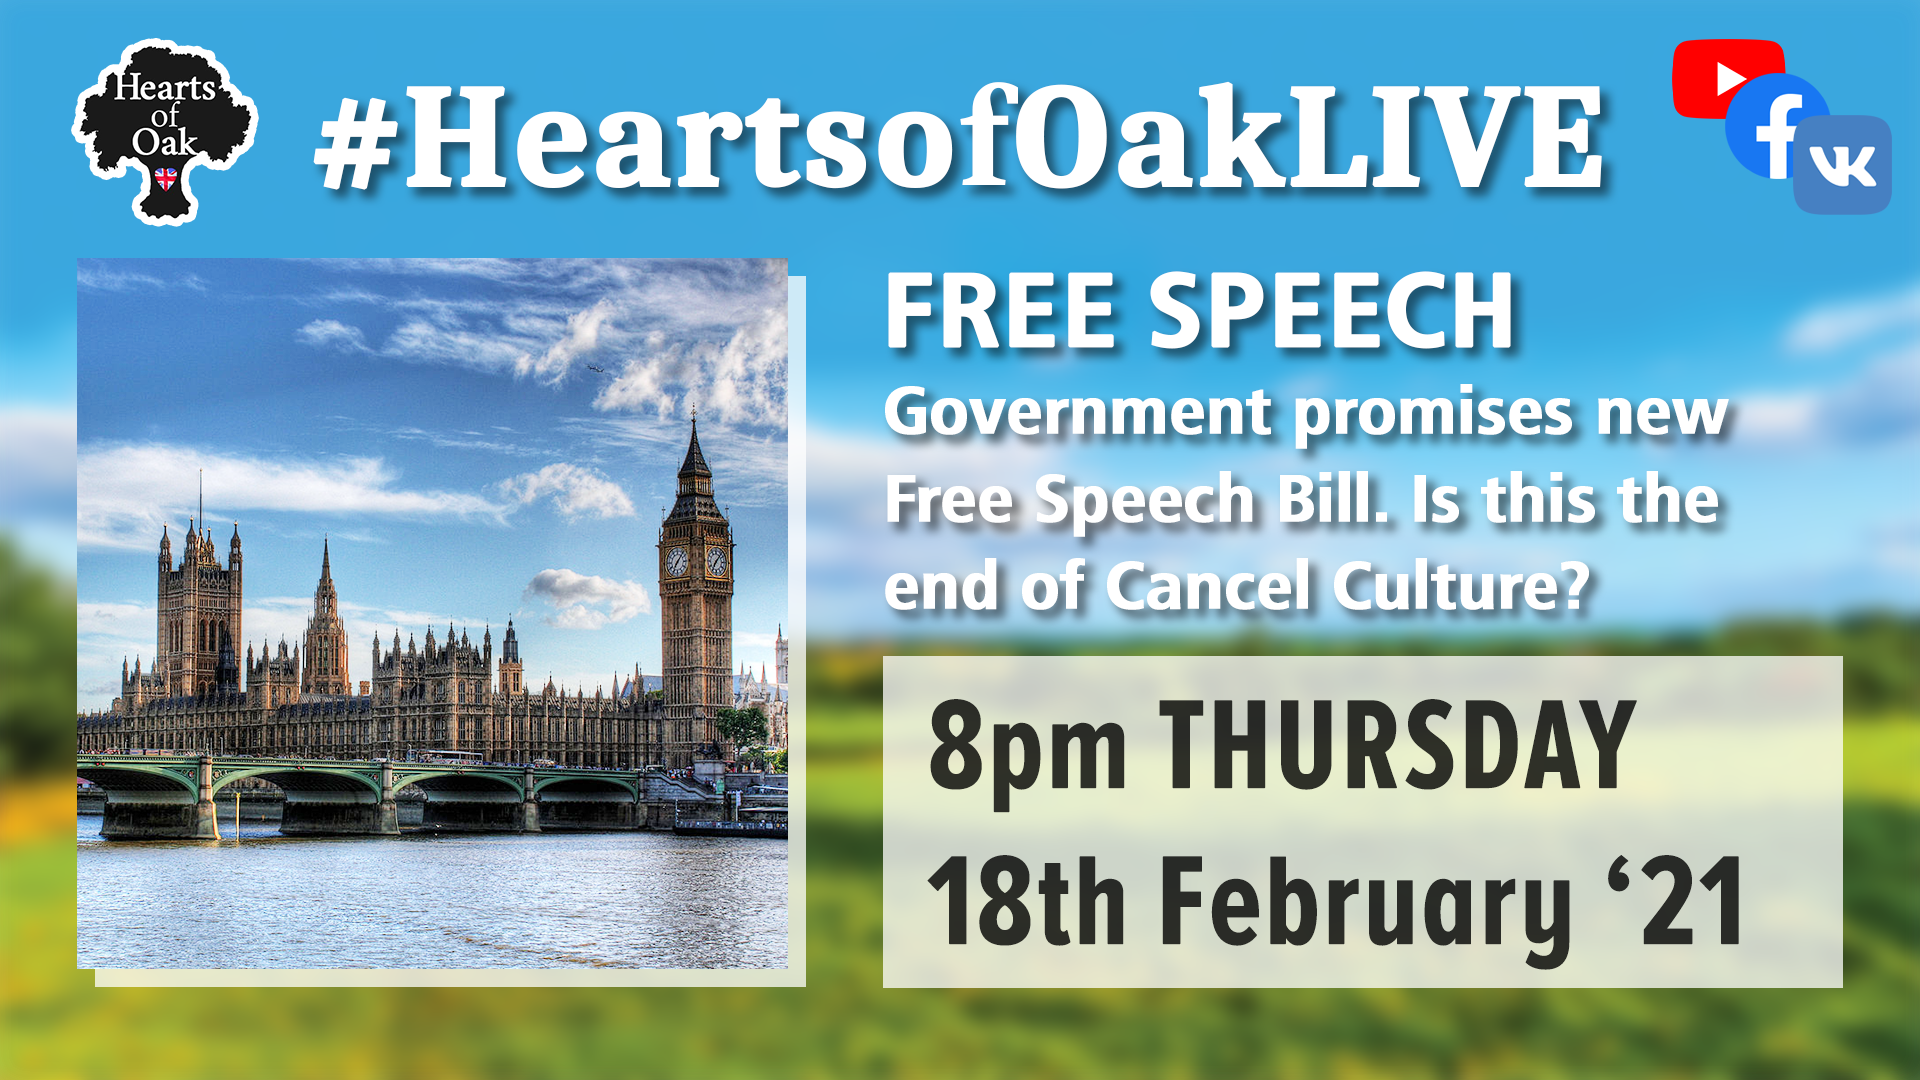 Free Speech: Government propose new Free Speech Bill. Is this the end of Cancel Culture?